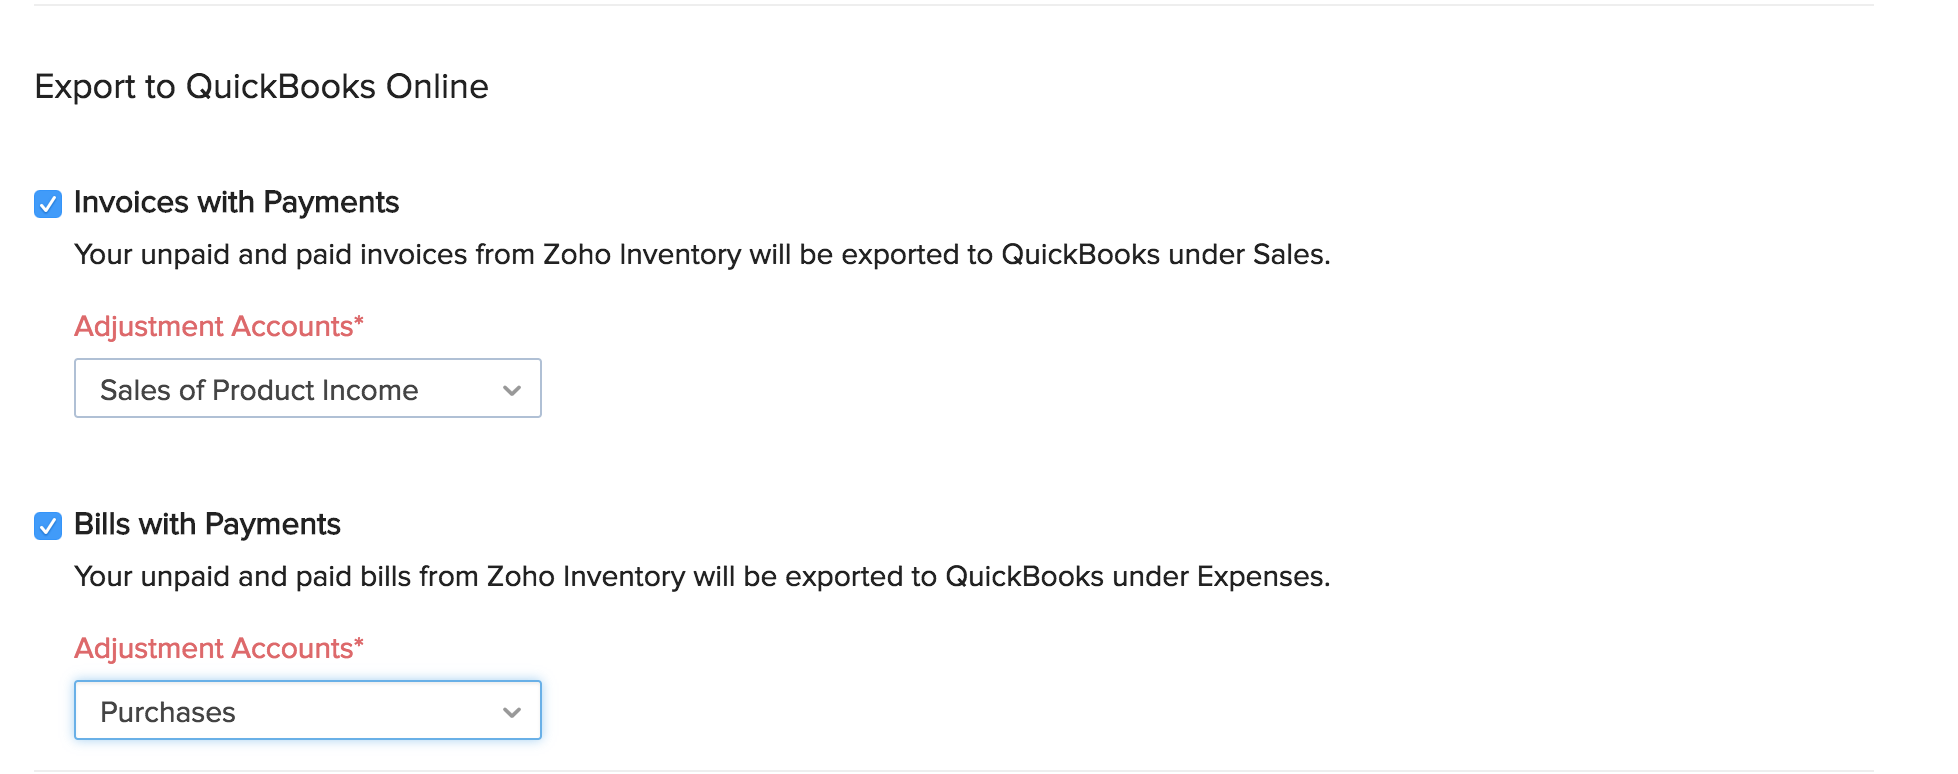 QuickBooks Online Integration:: User Guide | Zoho Inventory